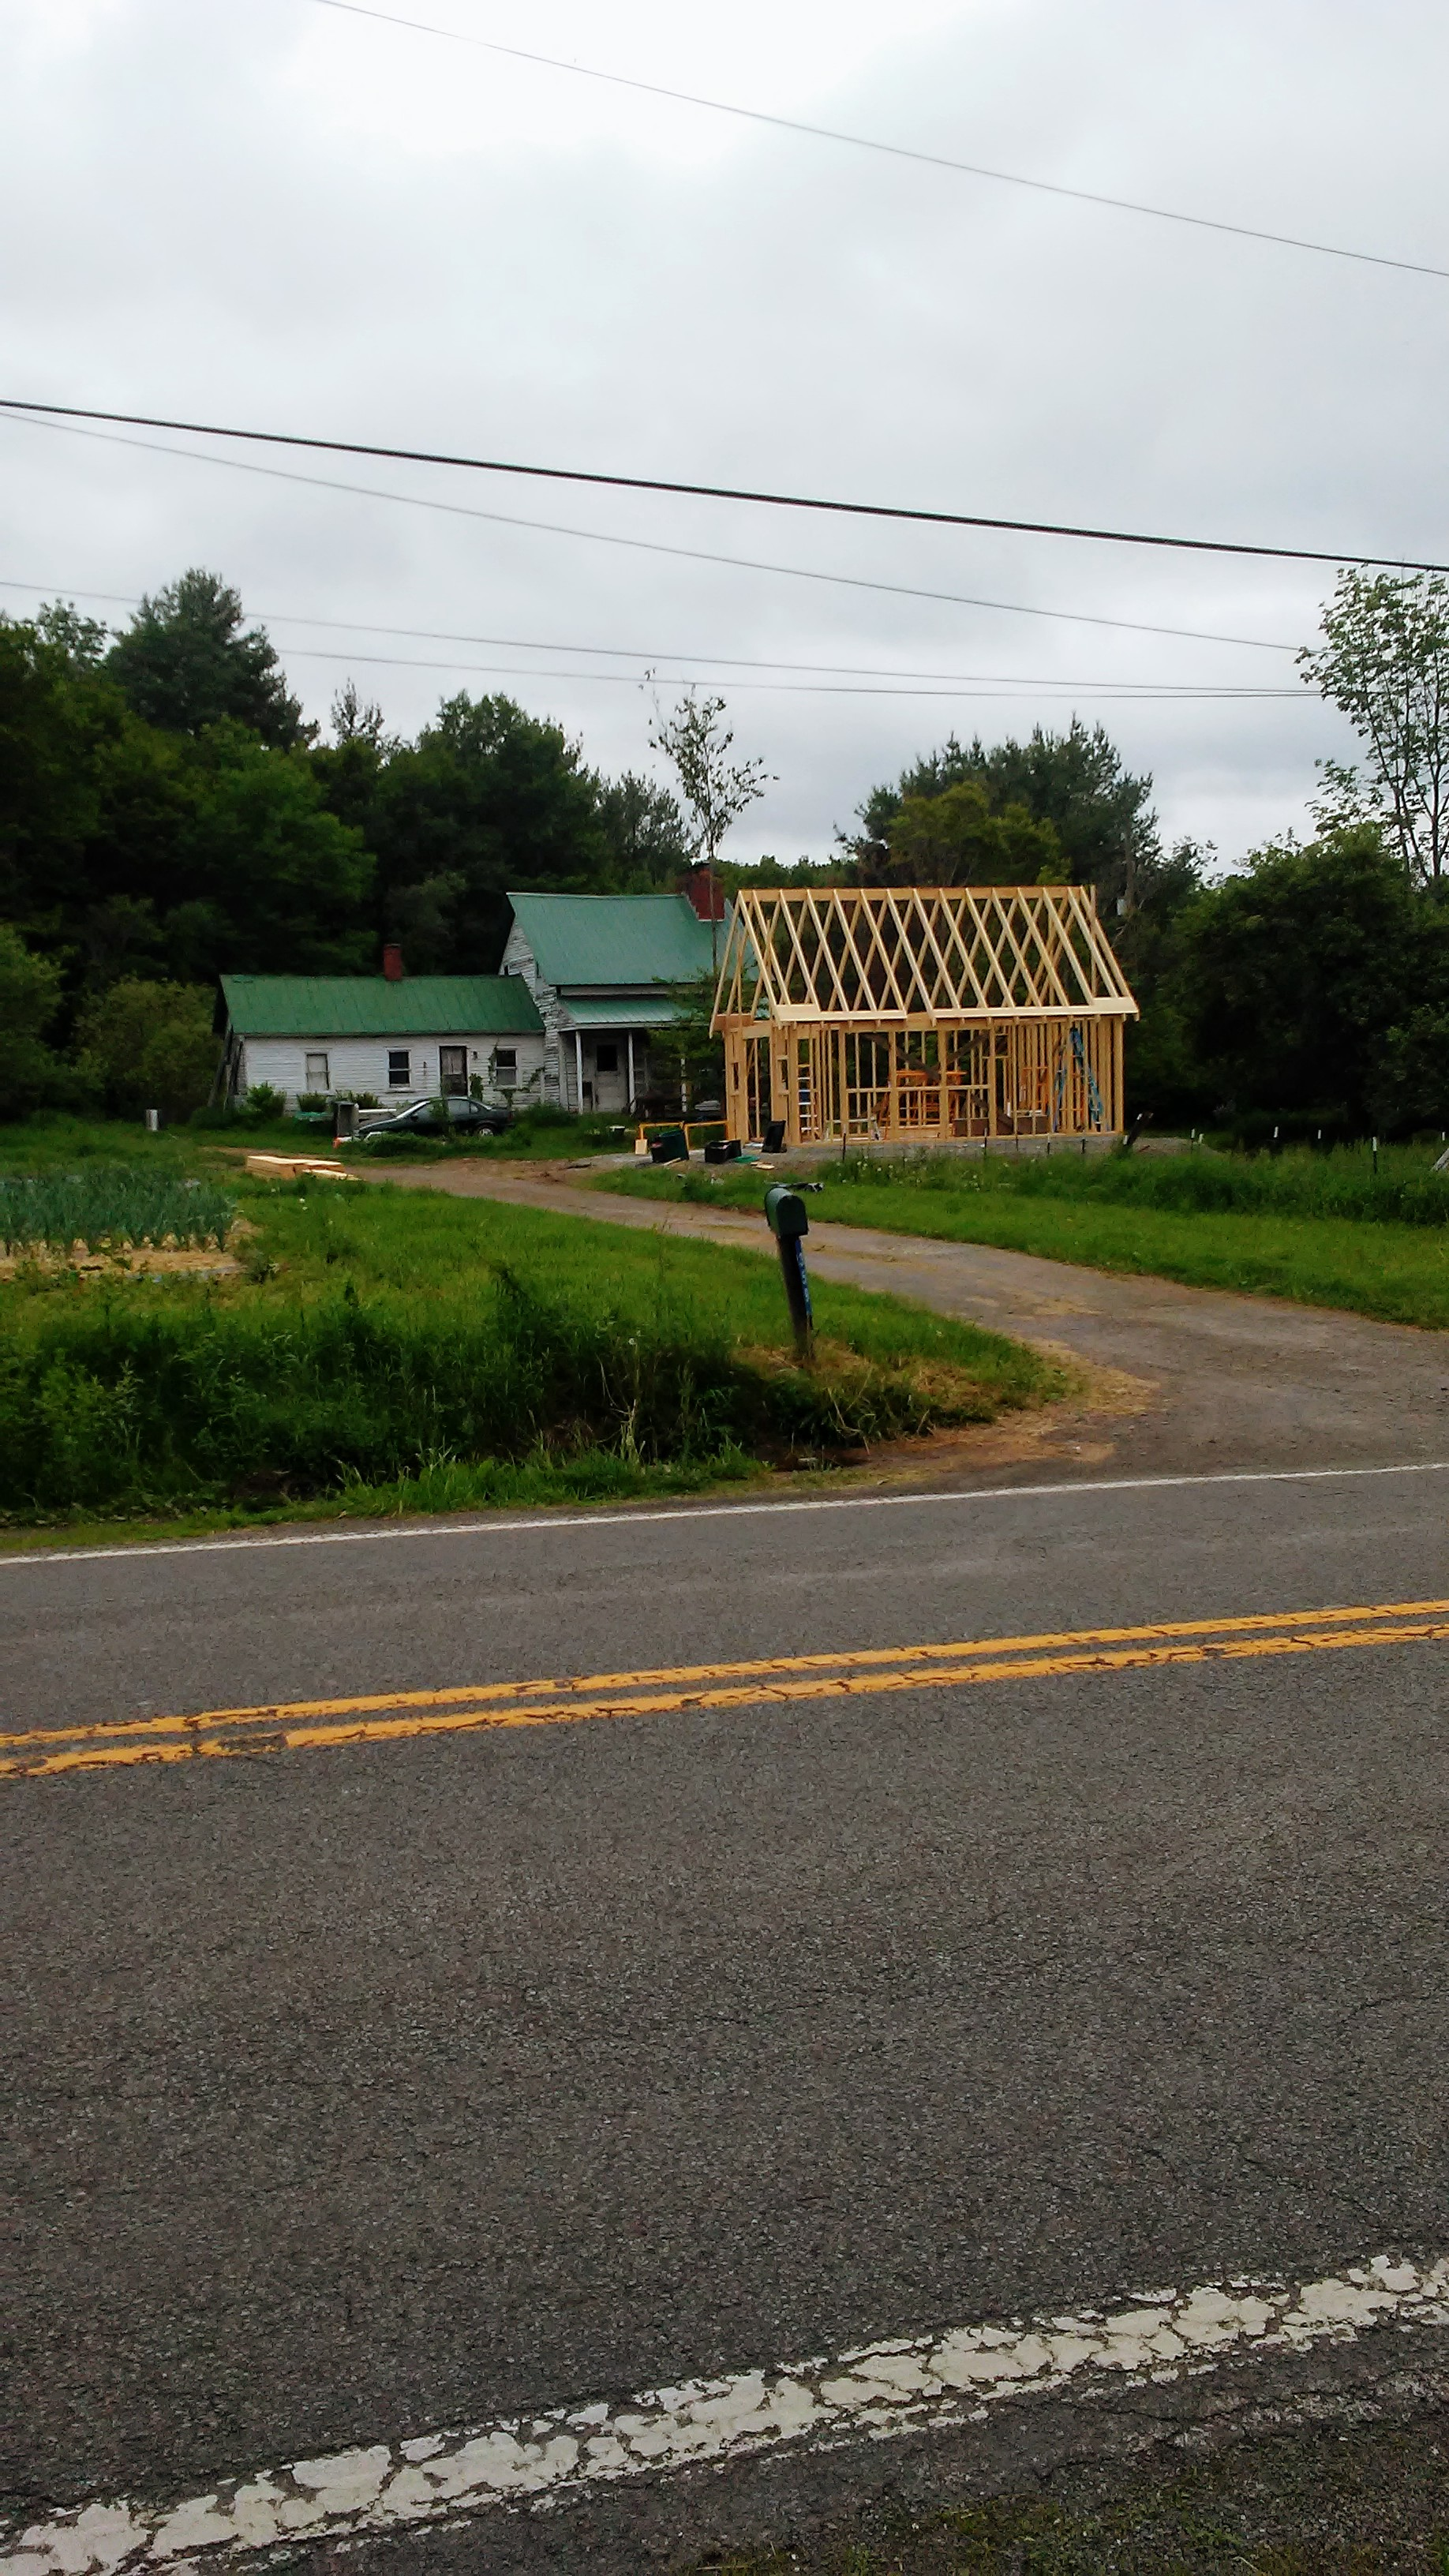 Here's the view from across the road, with Milt's house in the background. The ability to store vegetables in the walk-in and prep for market under a roof on rainy days makes us farmers jump for joy!